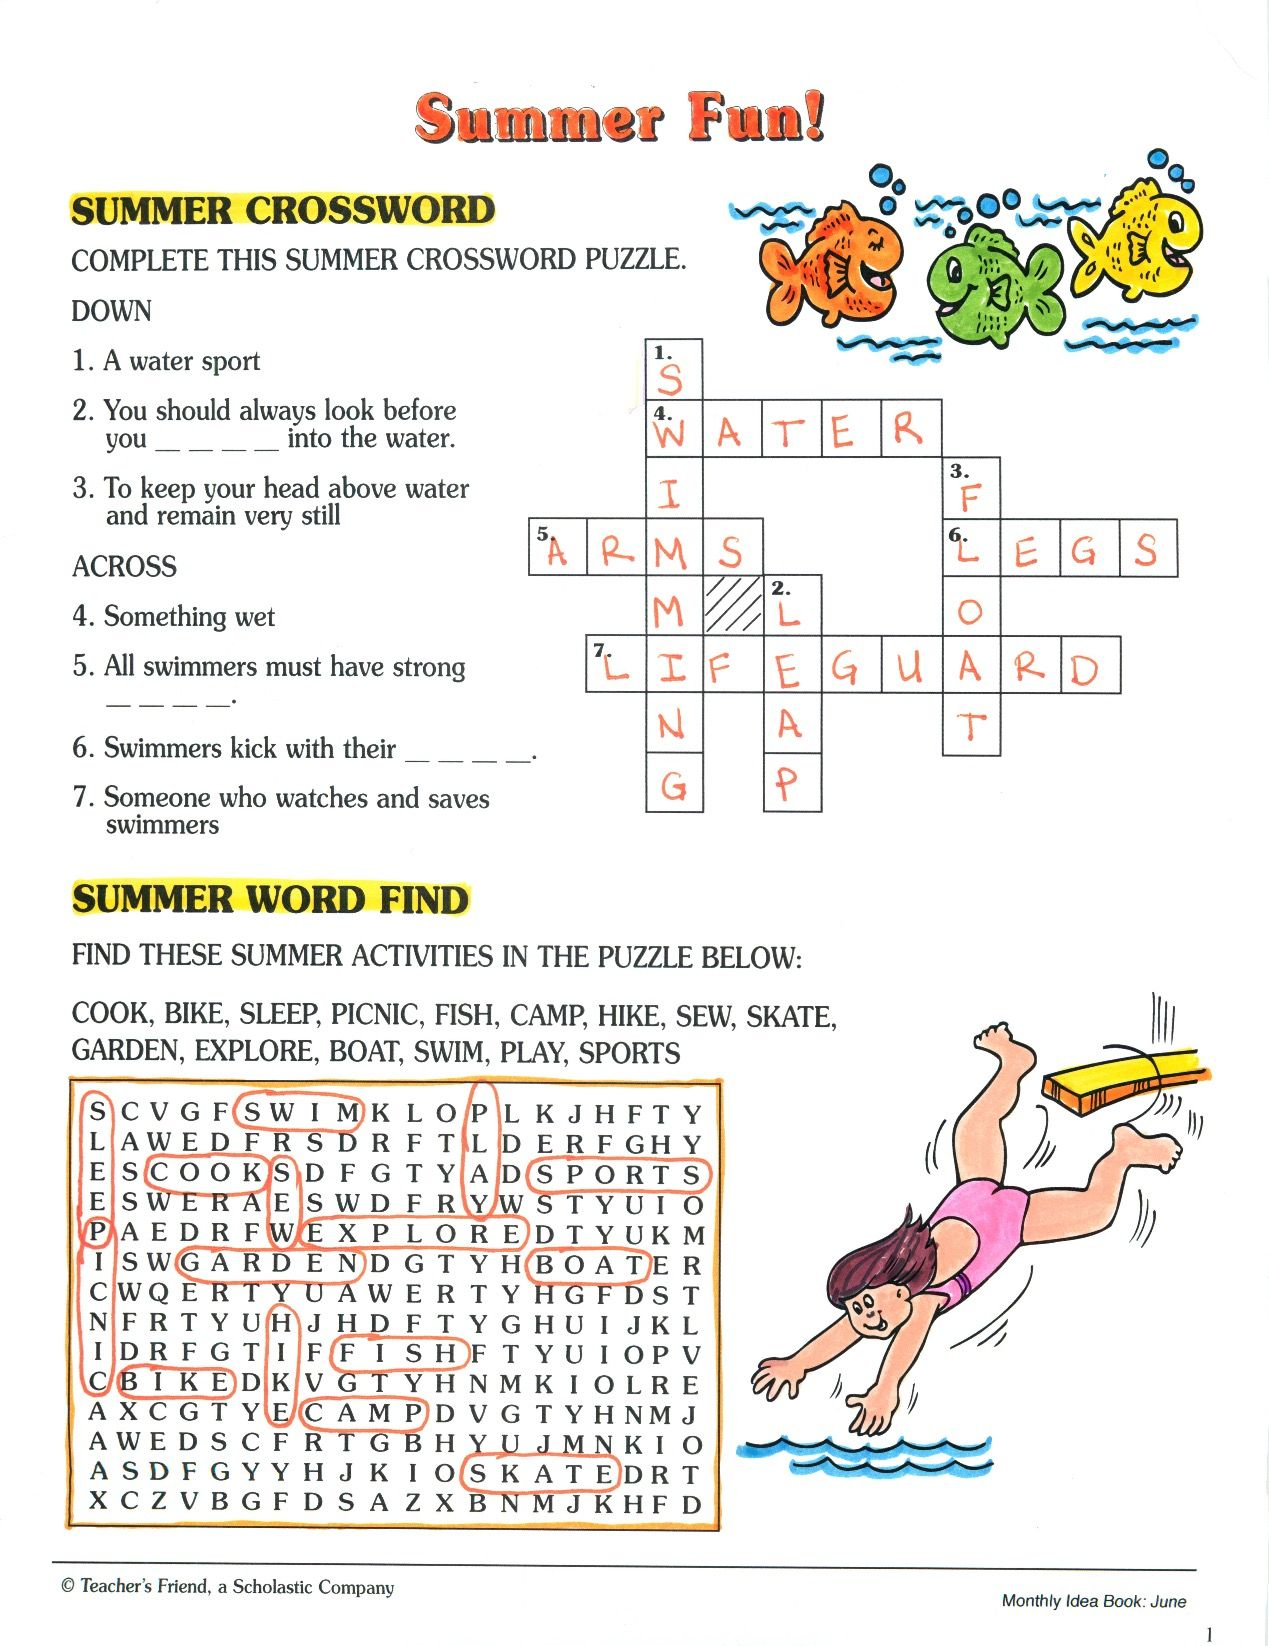 These Summer Themed Puzzles A Crossword And Word Search Are Almost As Fun As Summer Itself Summer Puzzle Summer Fun Fun